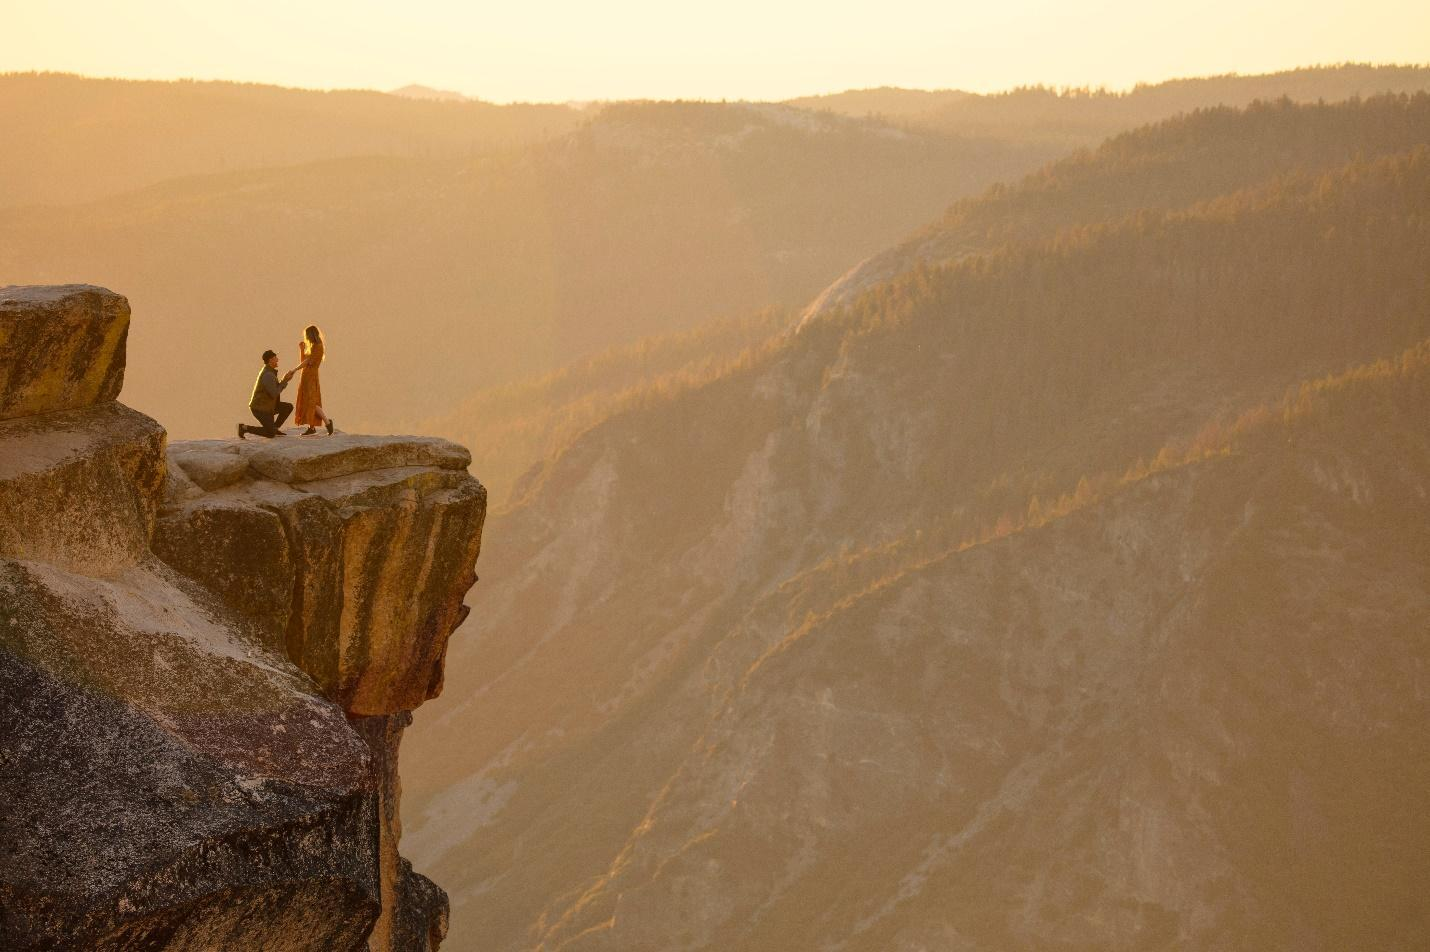 Man proposing on a cliff